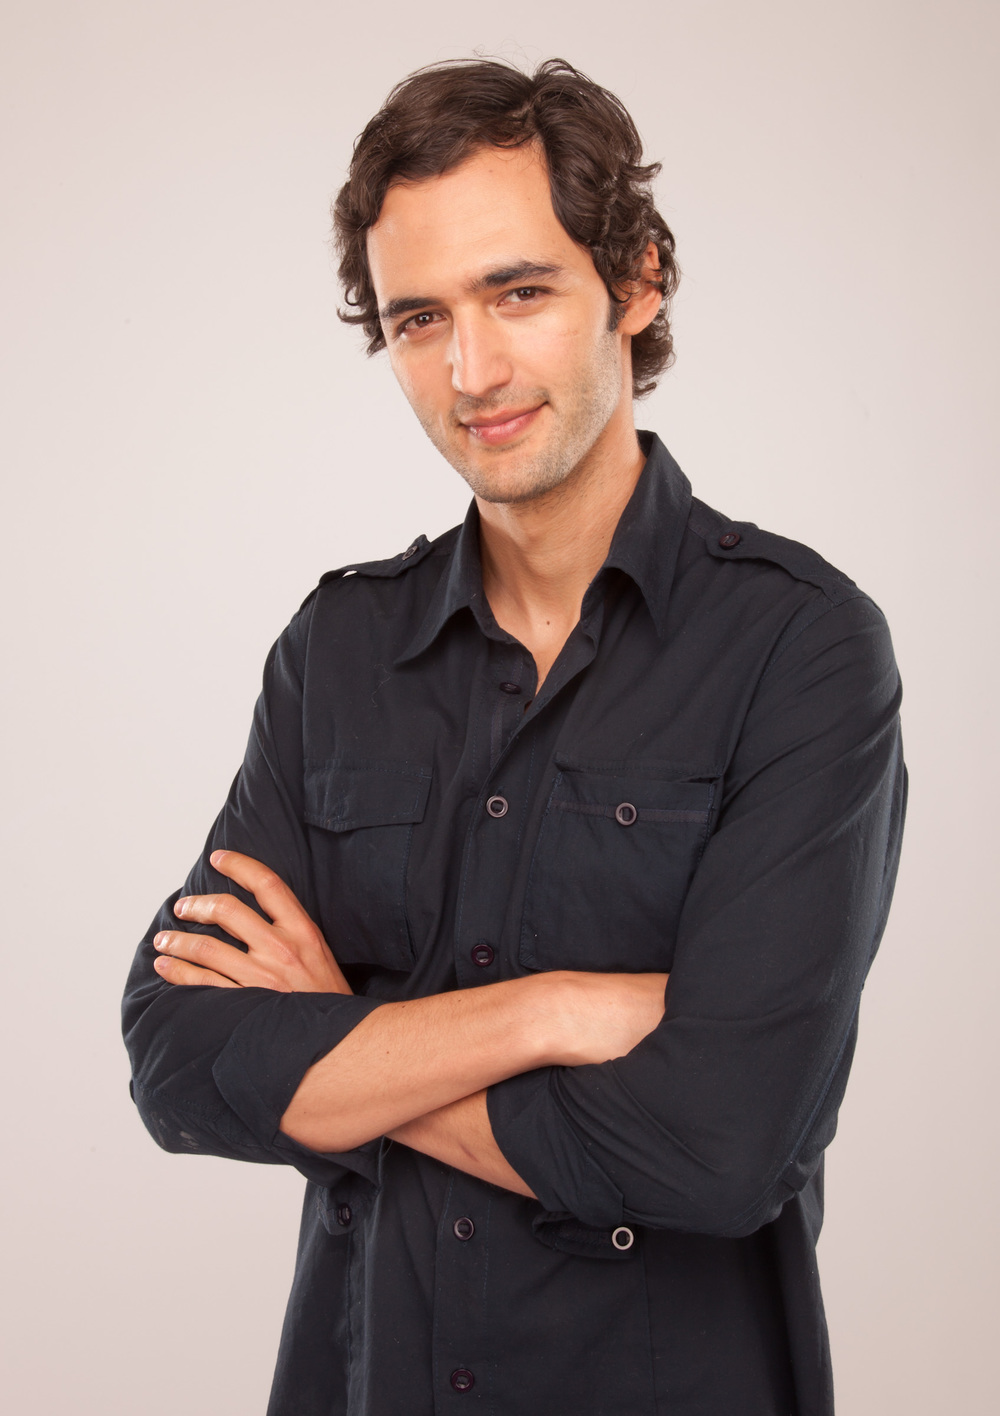 Jason Silva, Host of Brain Games